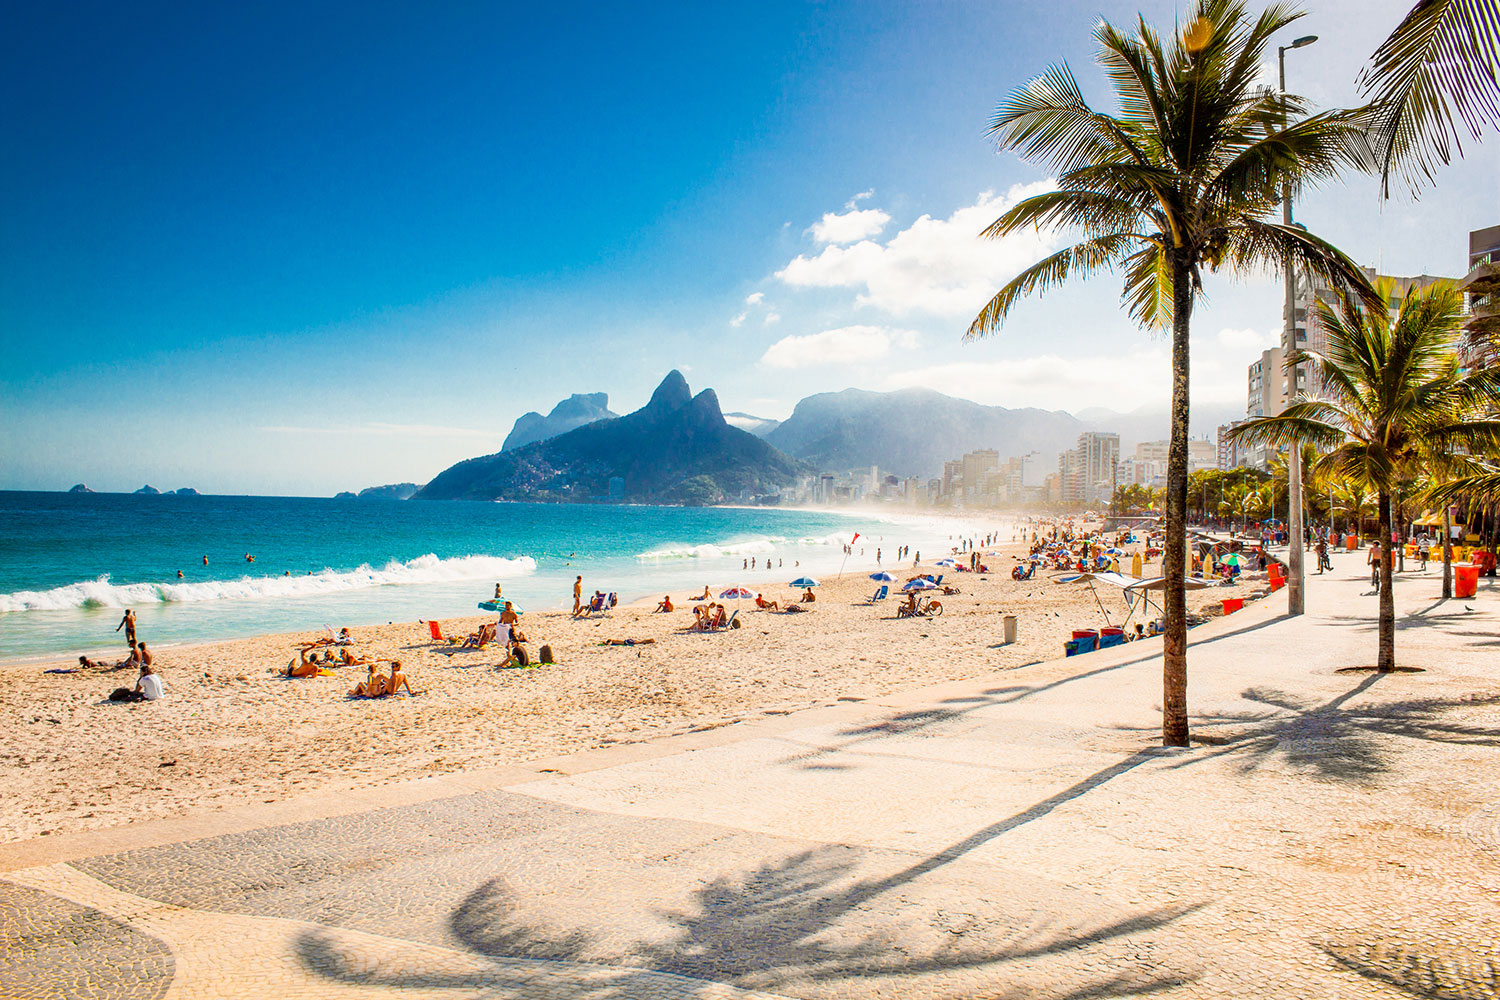 People on a sandy beach alongside palm trees and turquoise water in Brazil